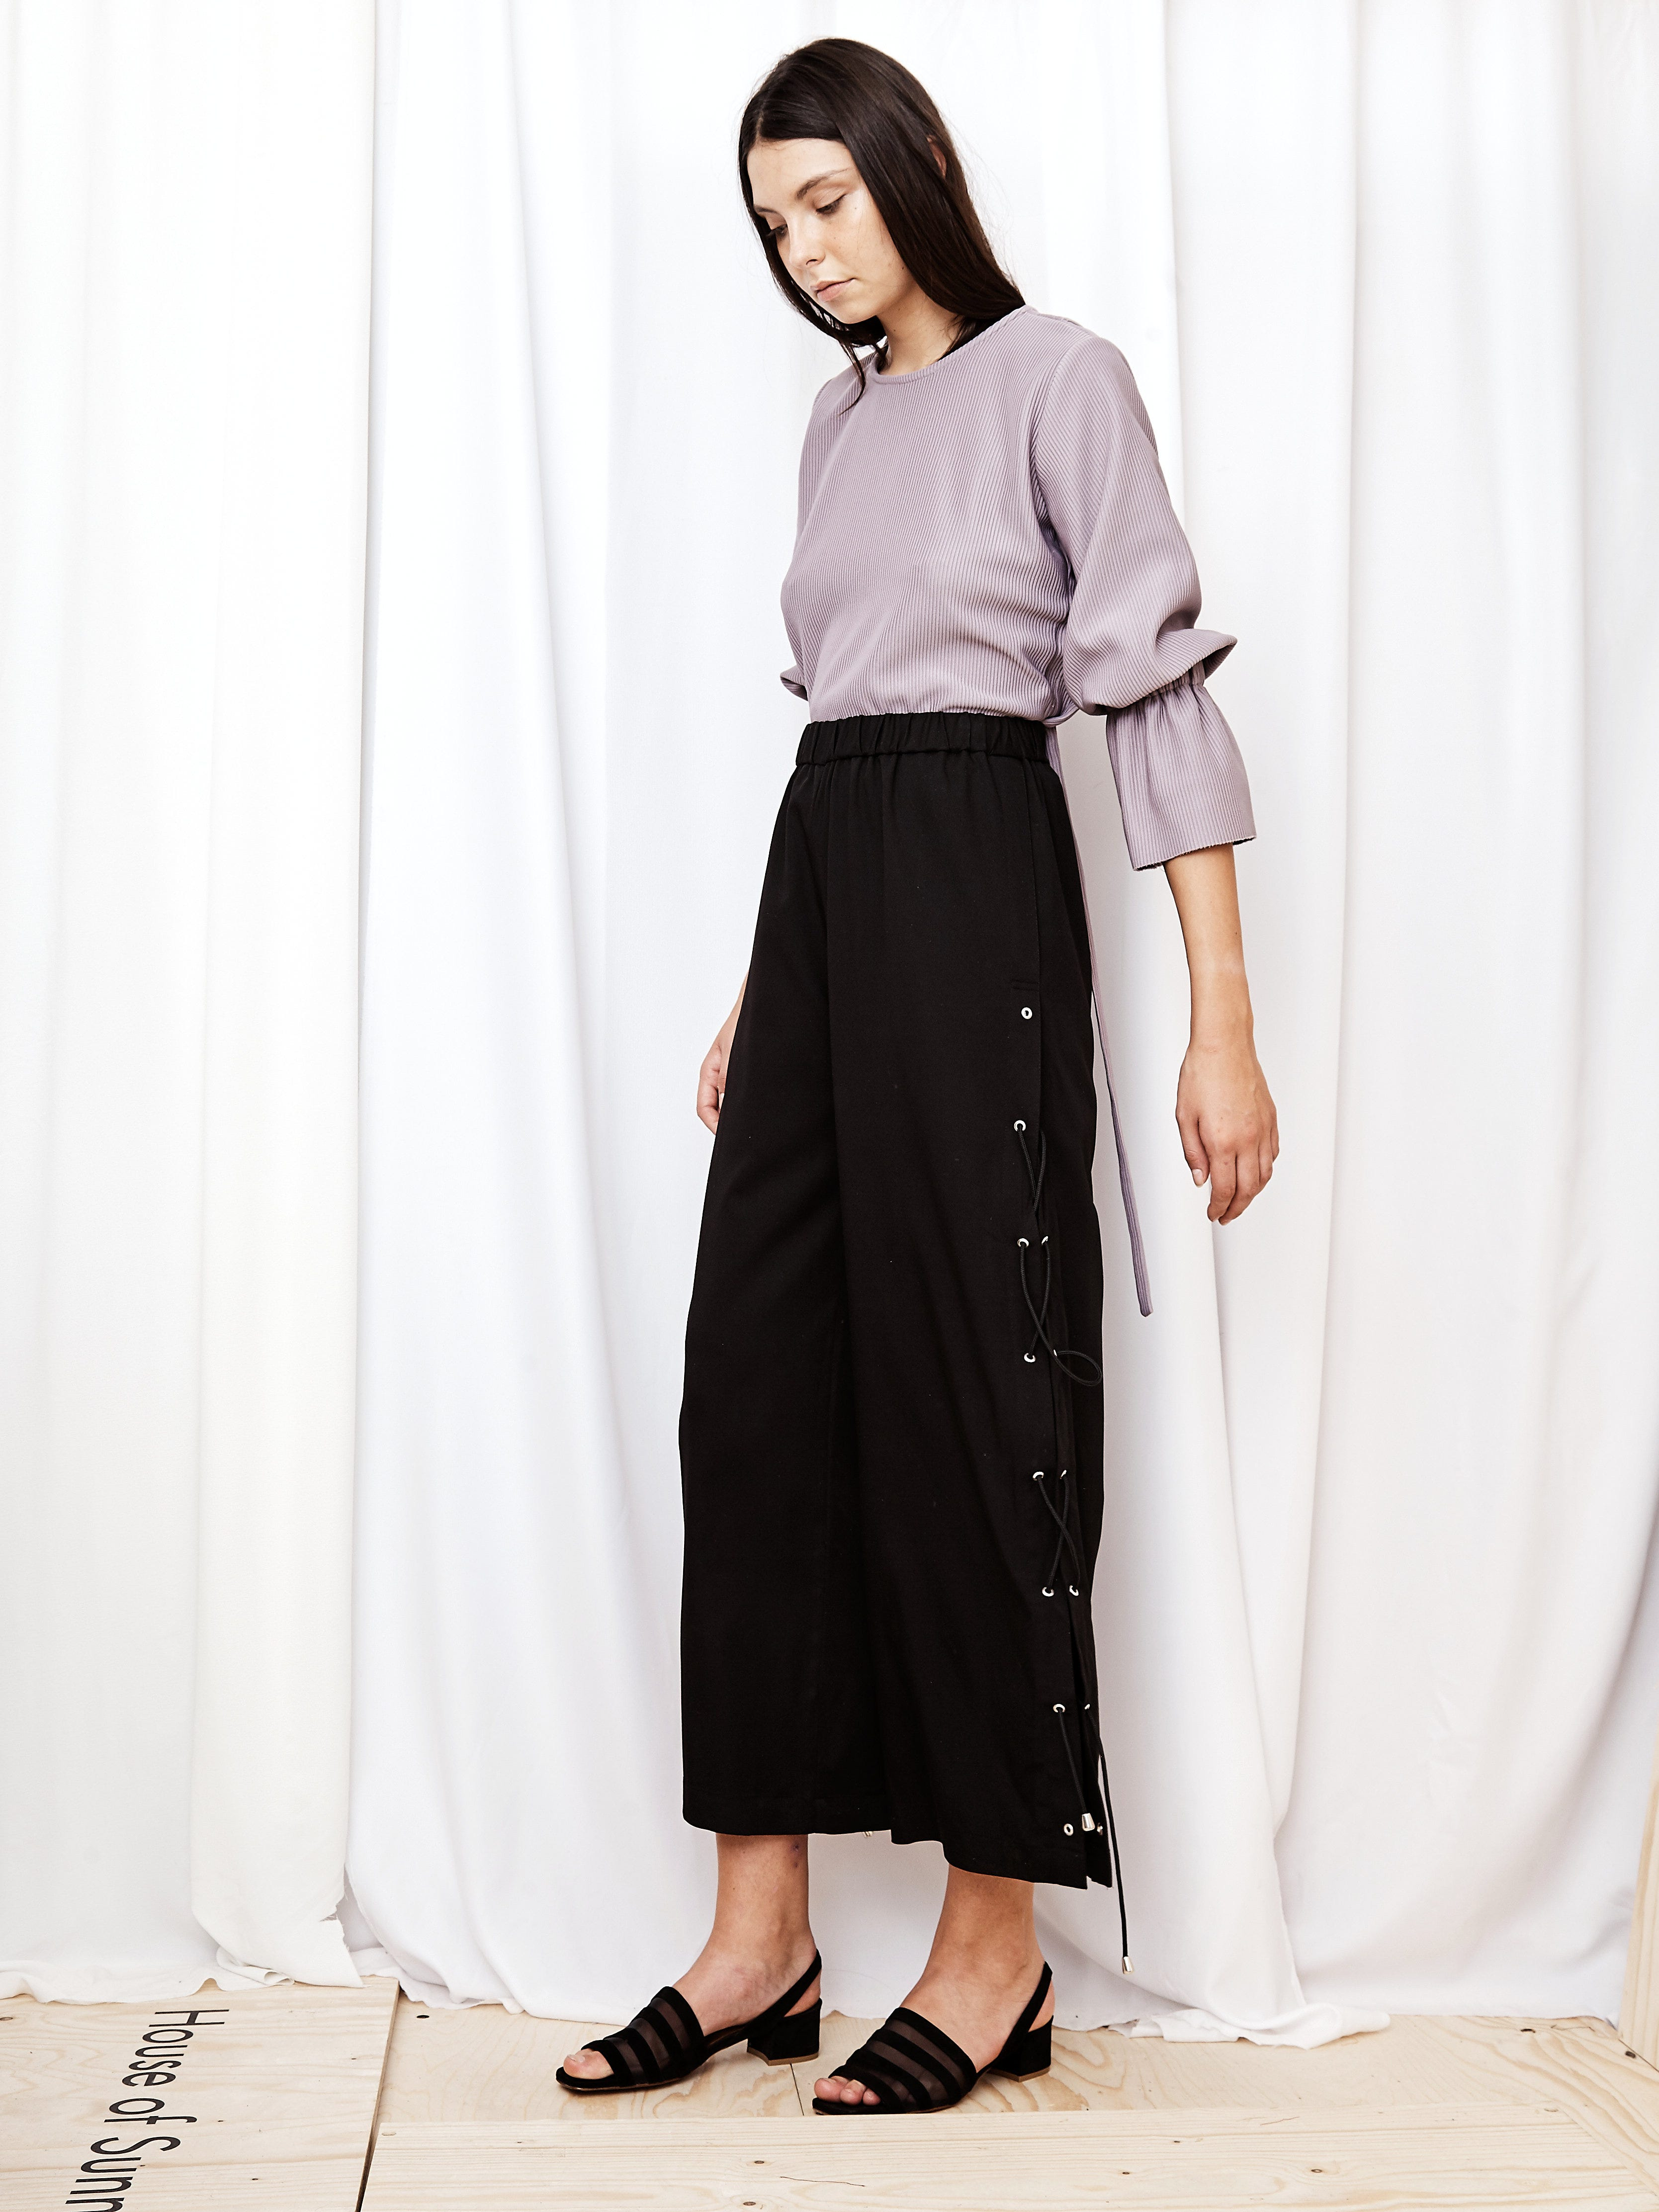 0103a376f88 Cool New Online Fashion Destinations To Buy From